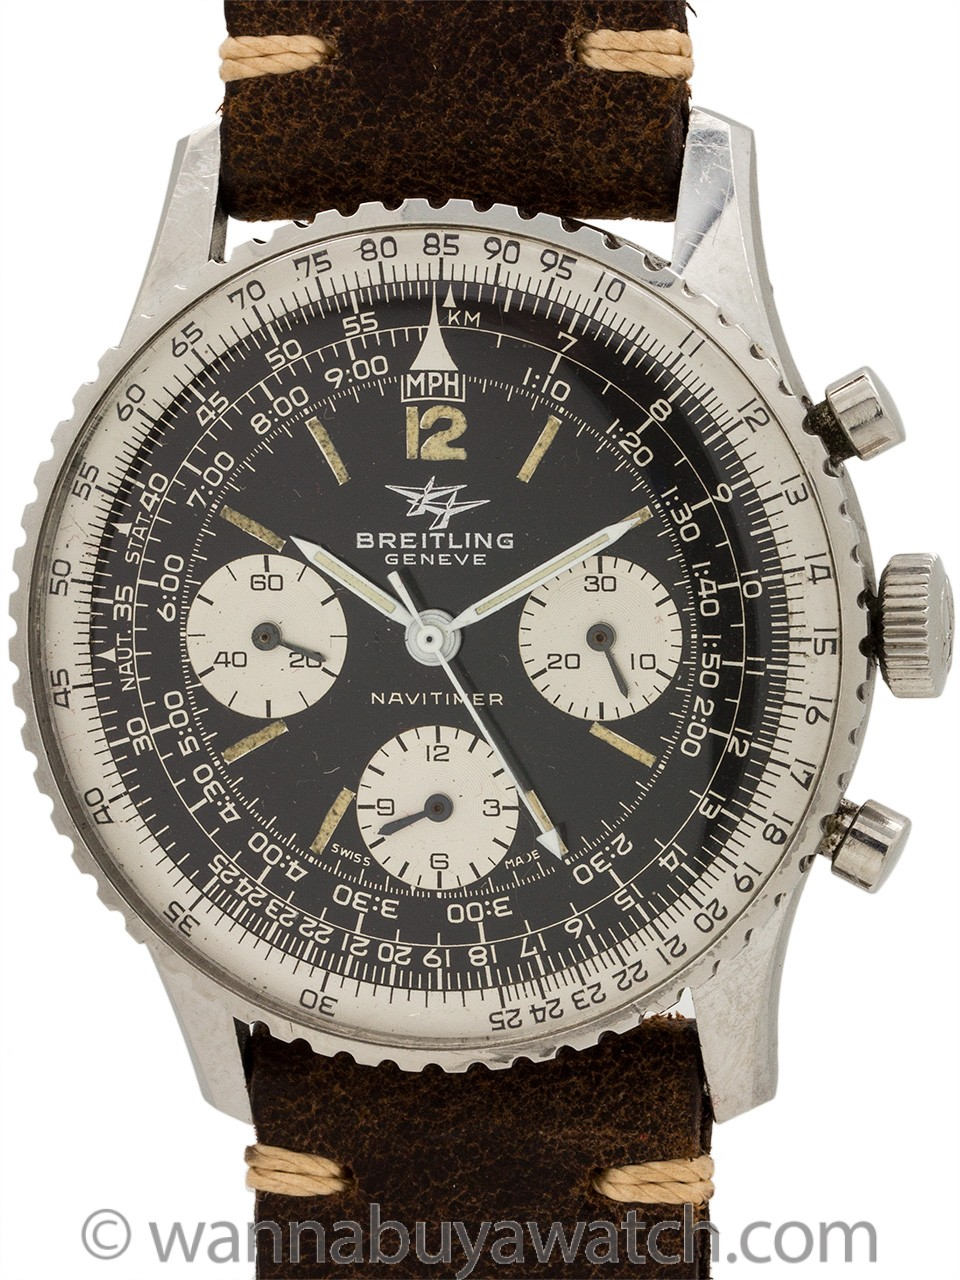 Vintage Breitling Navitimer ref 806 Twin Jets circa 1970